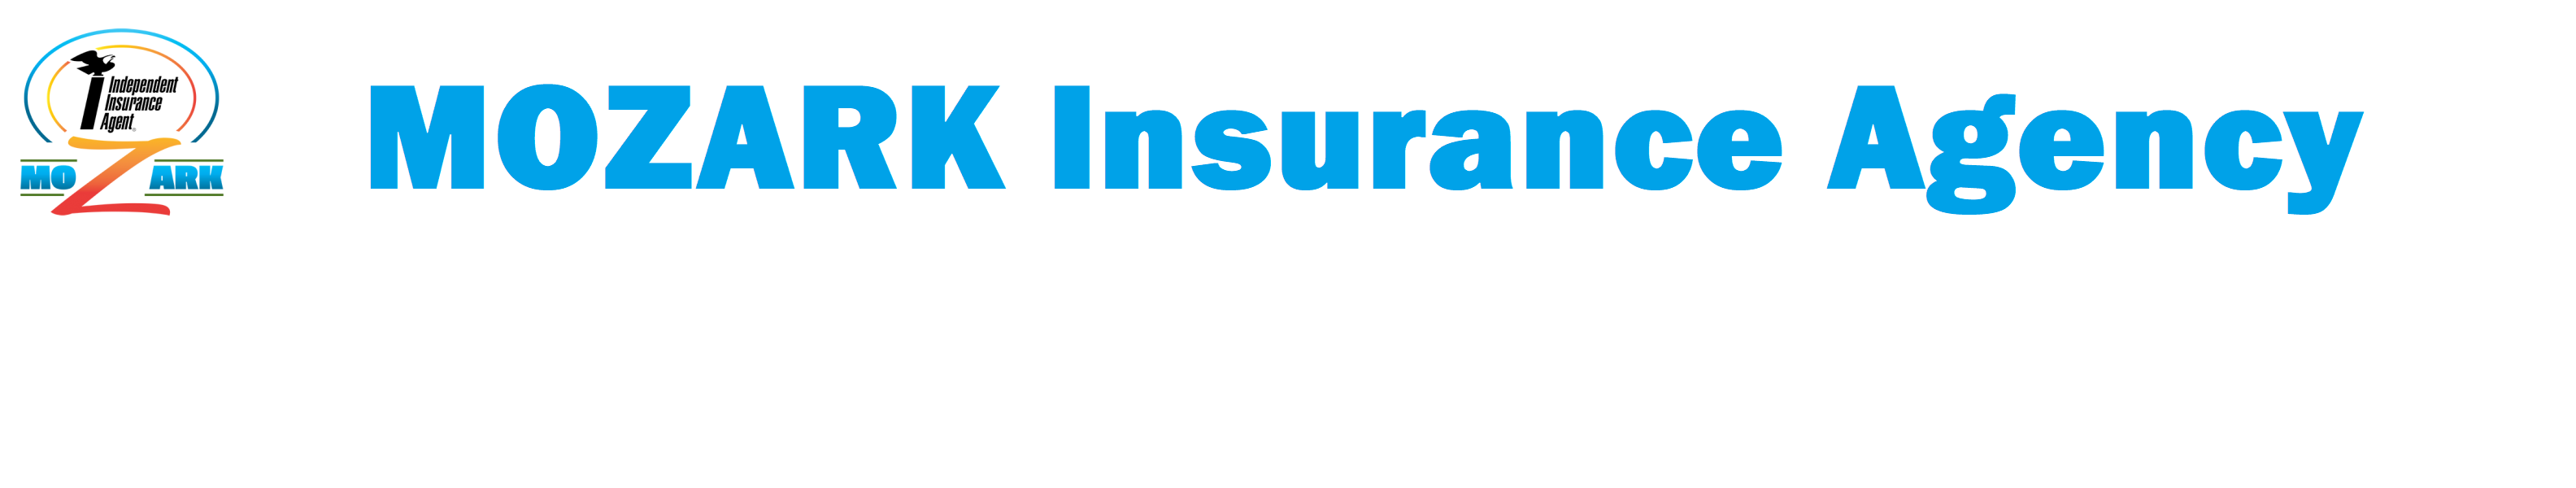 Mozark Insurance Agency Is A Locally Owned Independent Insurance